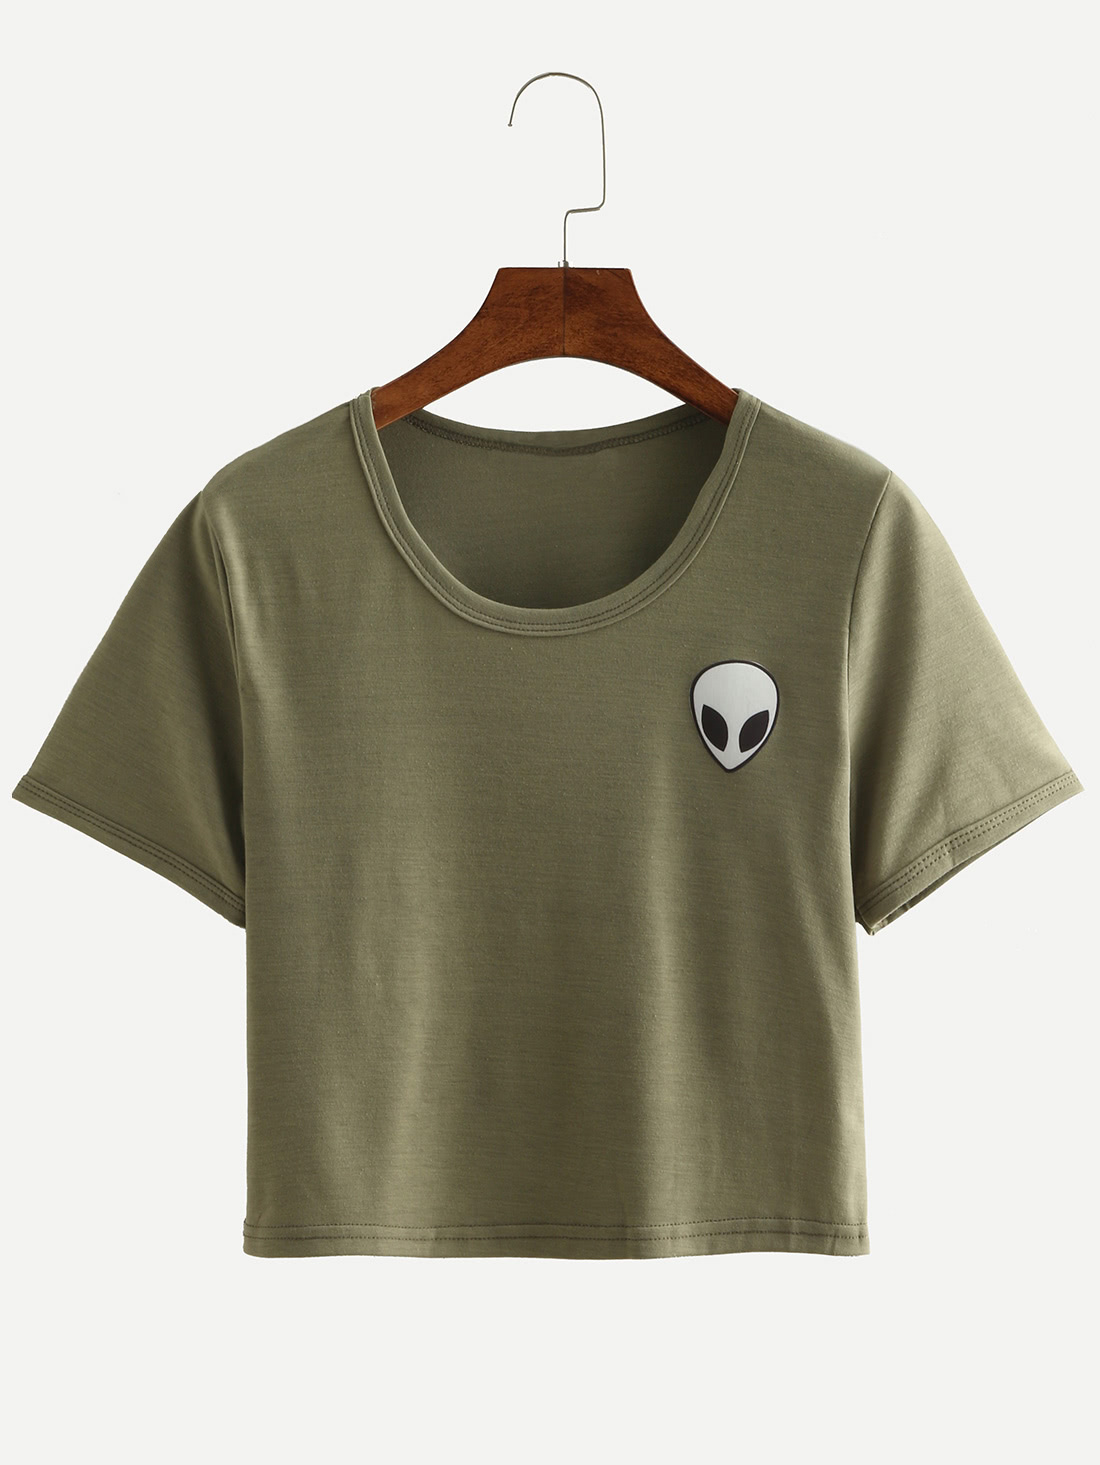 Alien Print Crop T Shirt Olive Greenfor Women Romwe